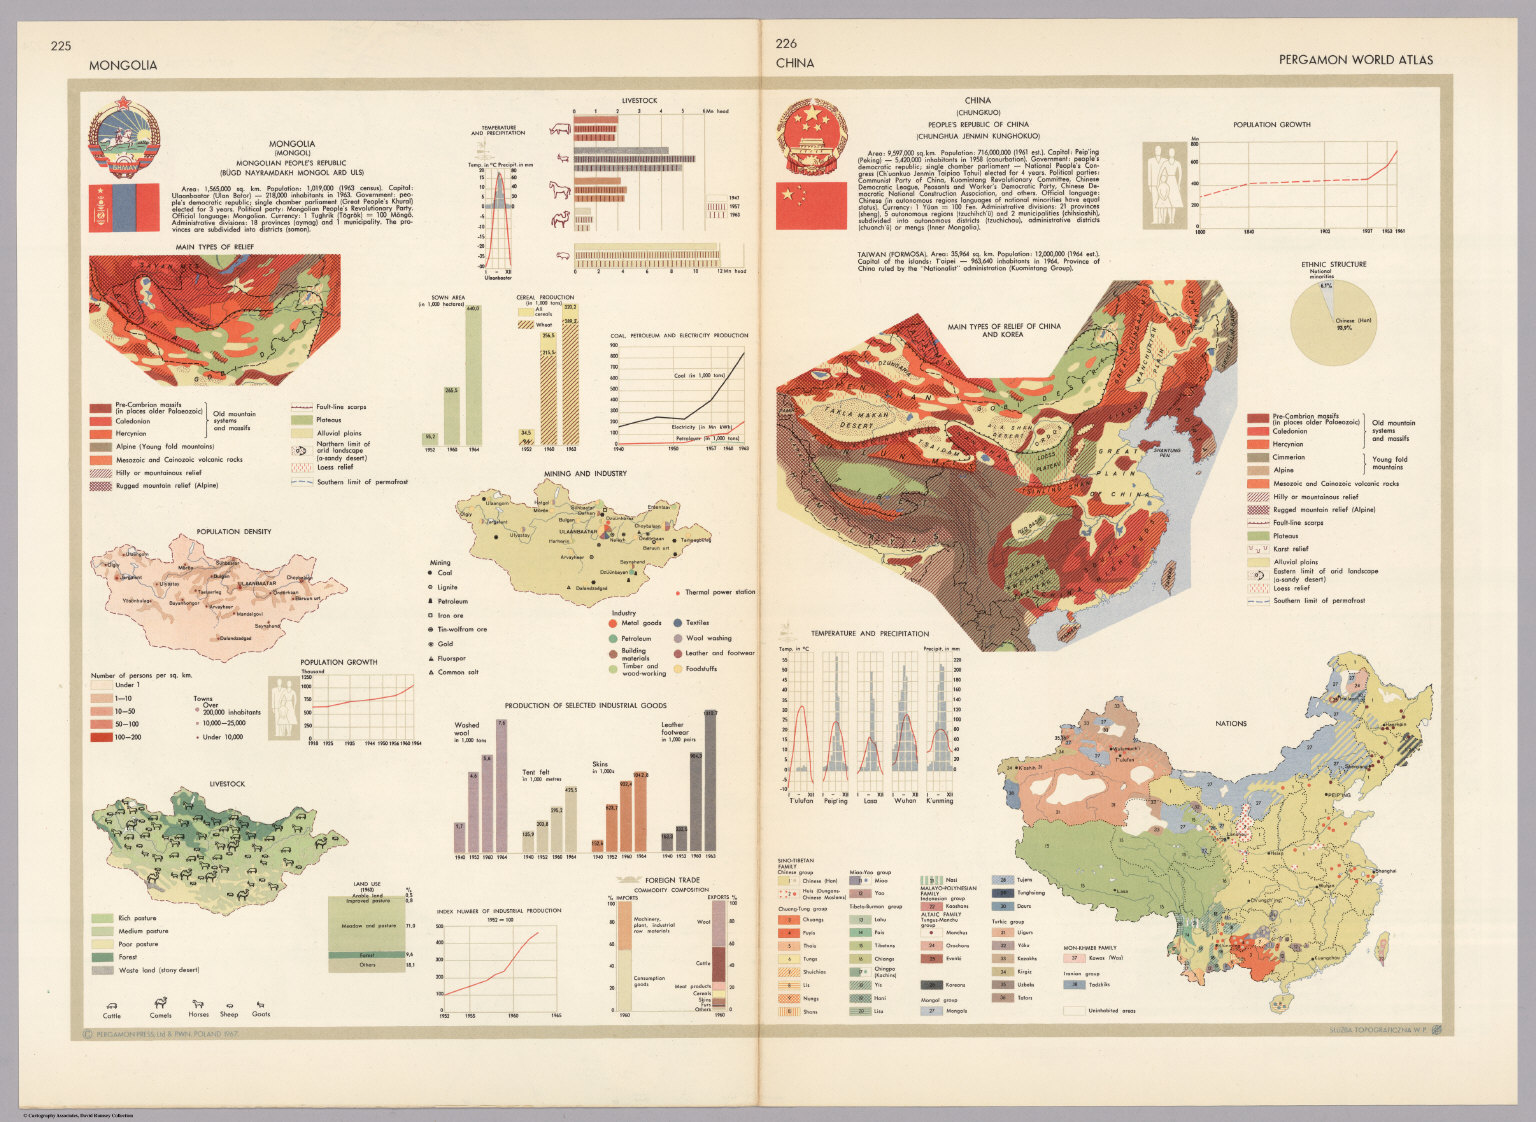 Mongolia China Pergamon World Atlas David Rumsey Historical Map Collection